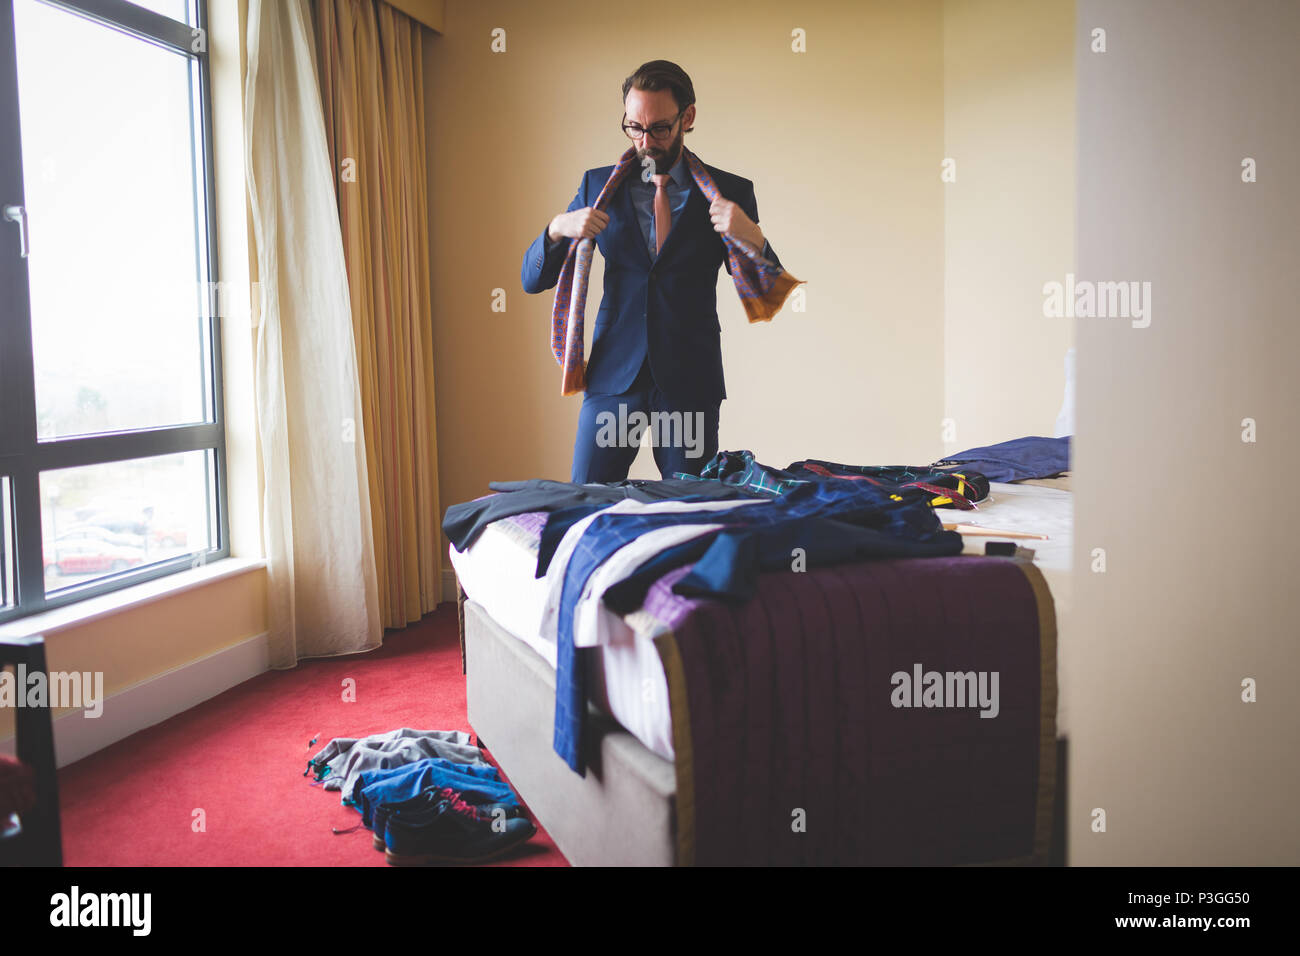 Businessman wearing his tie in hotel room - Stock Image